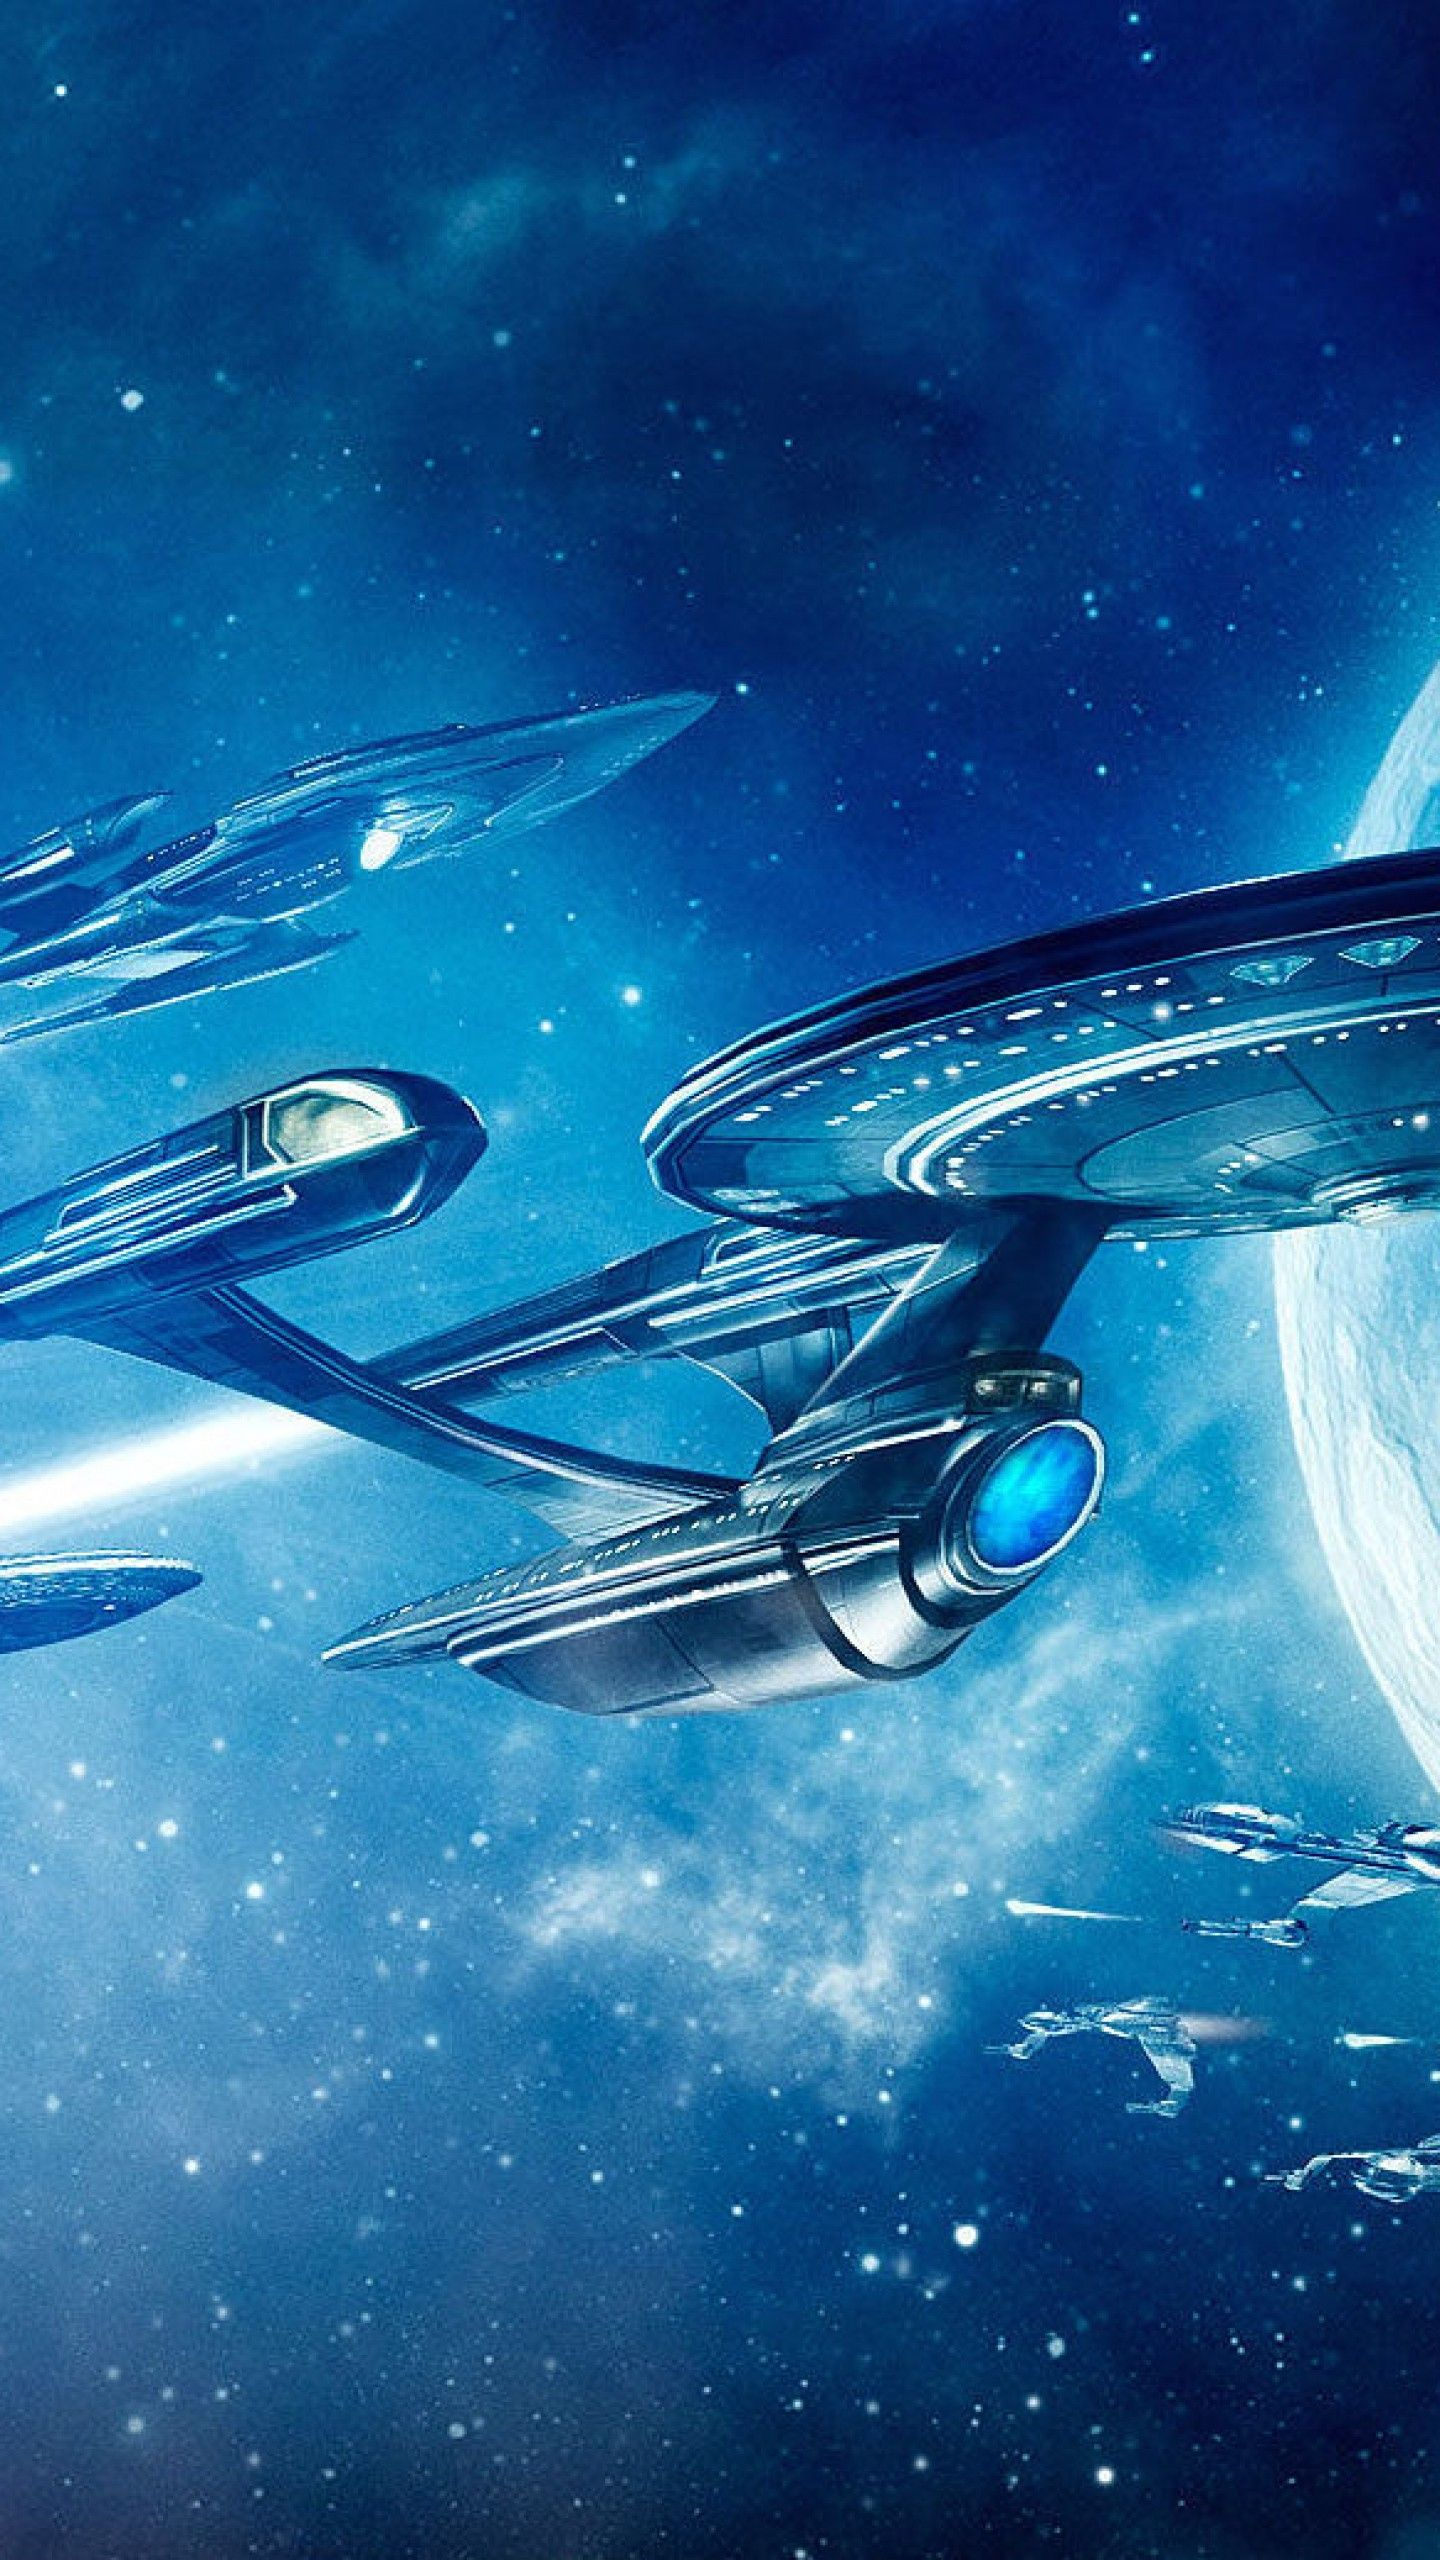 Star Trek Wallpaper Android 71 Images Star Trek Wallpaper